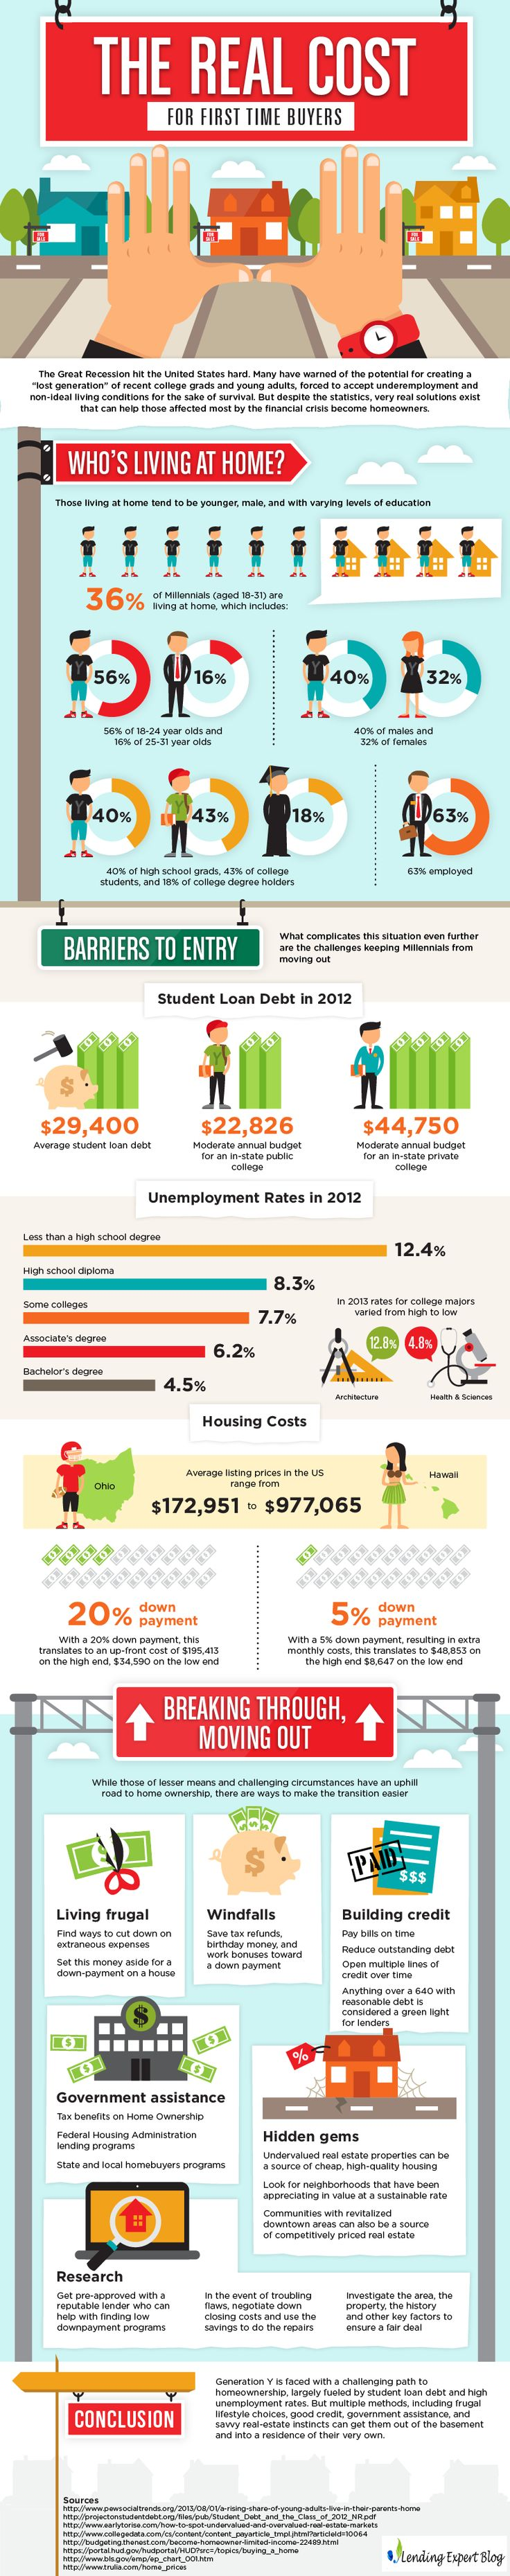 The Real Cost for First Time Home Buyers Christine Groves, Realtor Coldwell Banker Residential in Chicagoland www.Groves-Realty.com